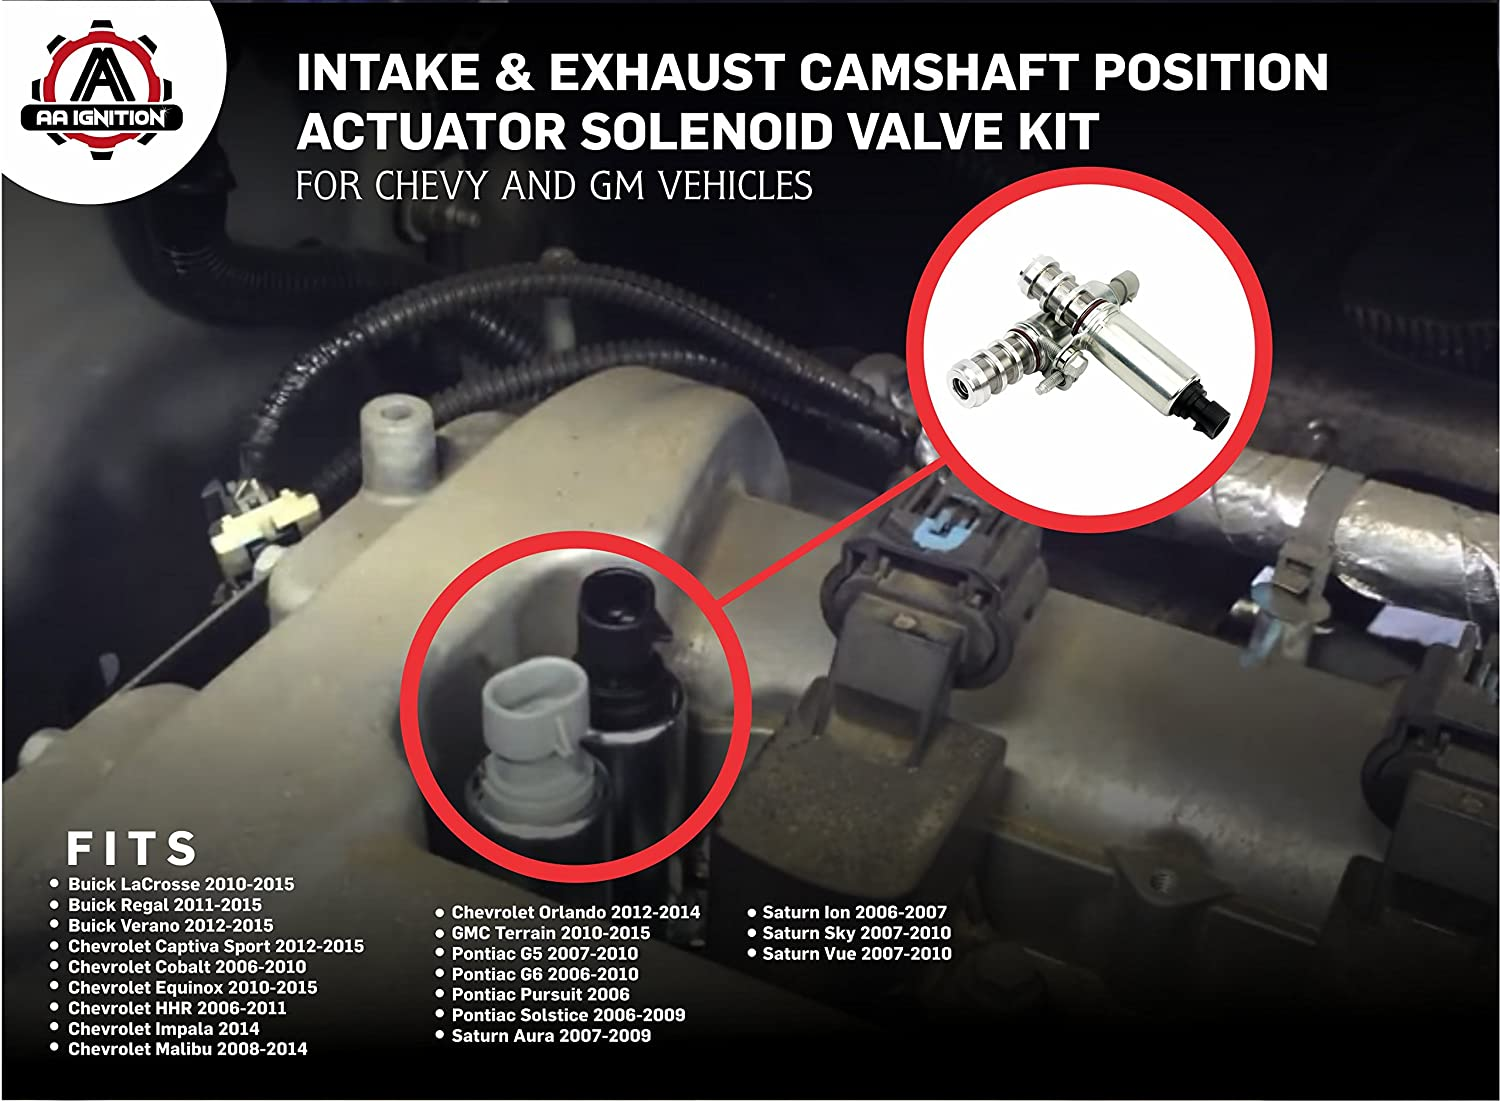 Intake Exhaust Camshaft Position Actuator Solenoid 2006 Cobalt Fuel Filter Location Valve Kit Replaces 12655421 12655420 Fits Chevy Hhr Malibu Equinox